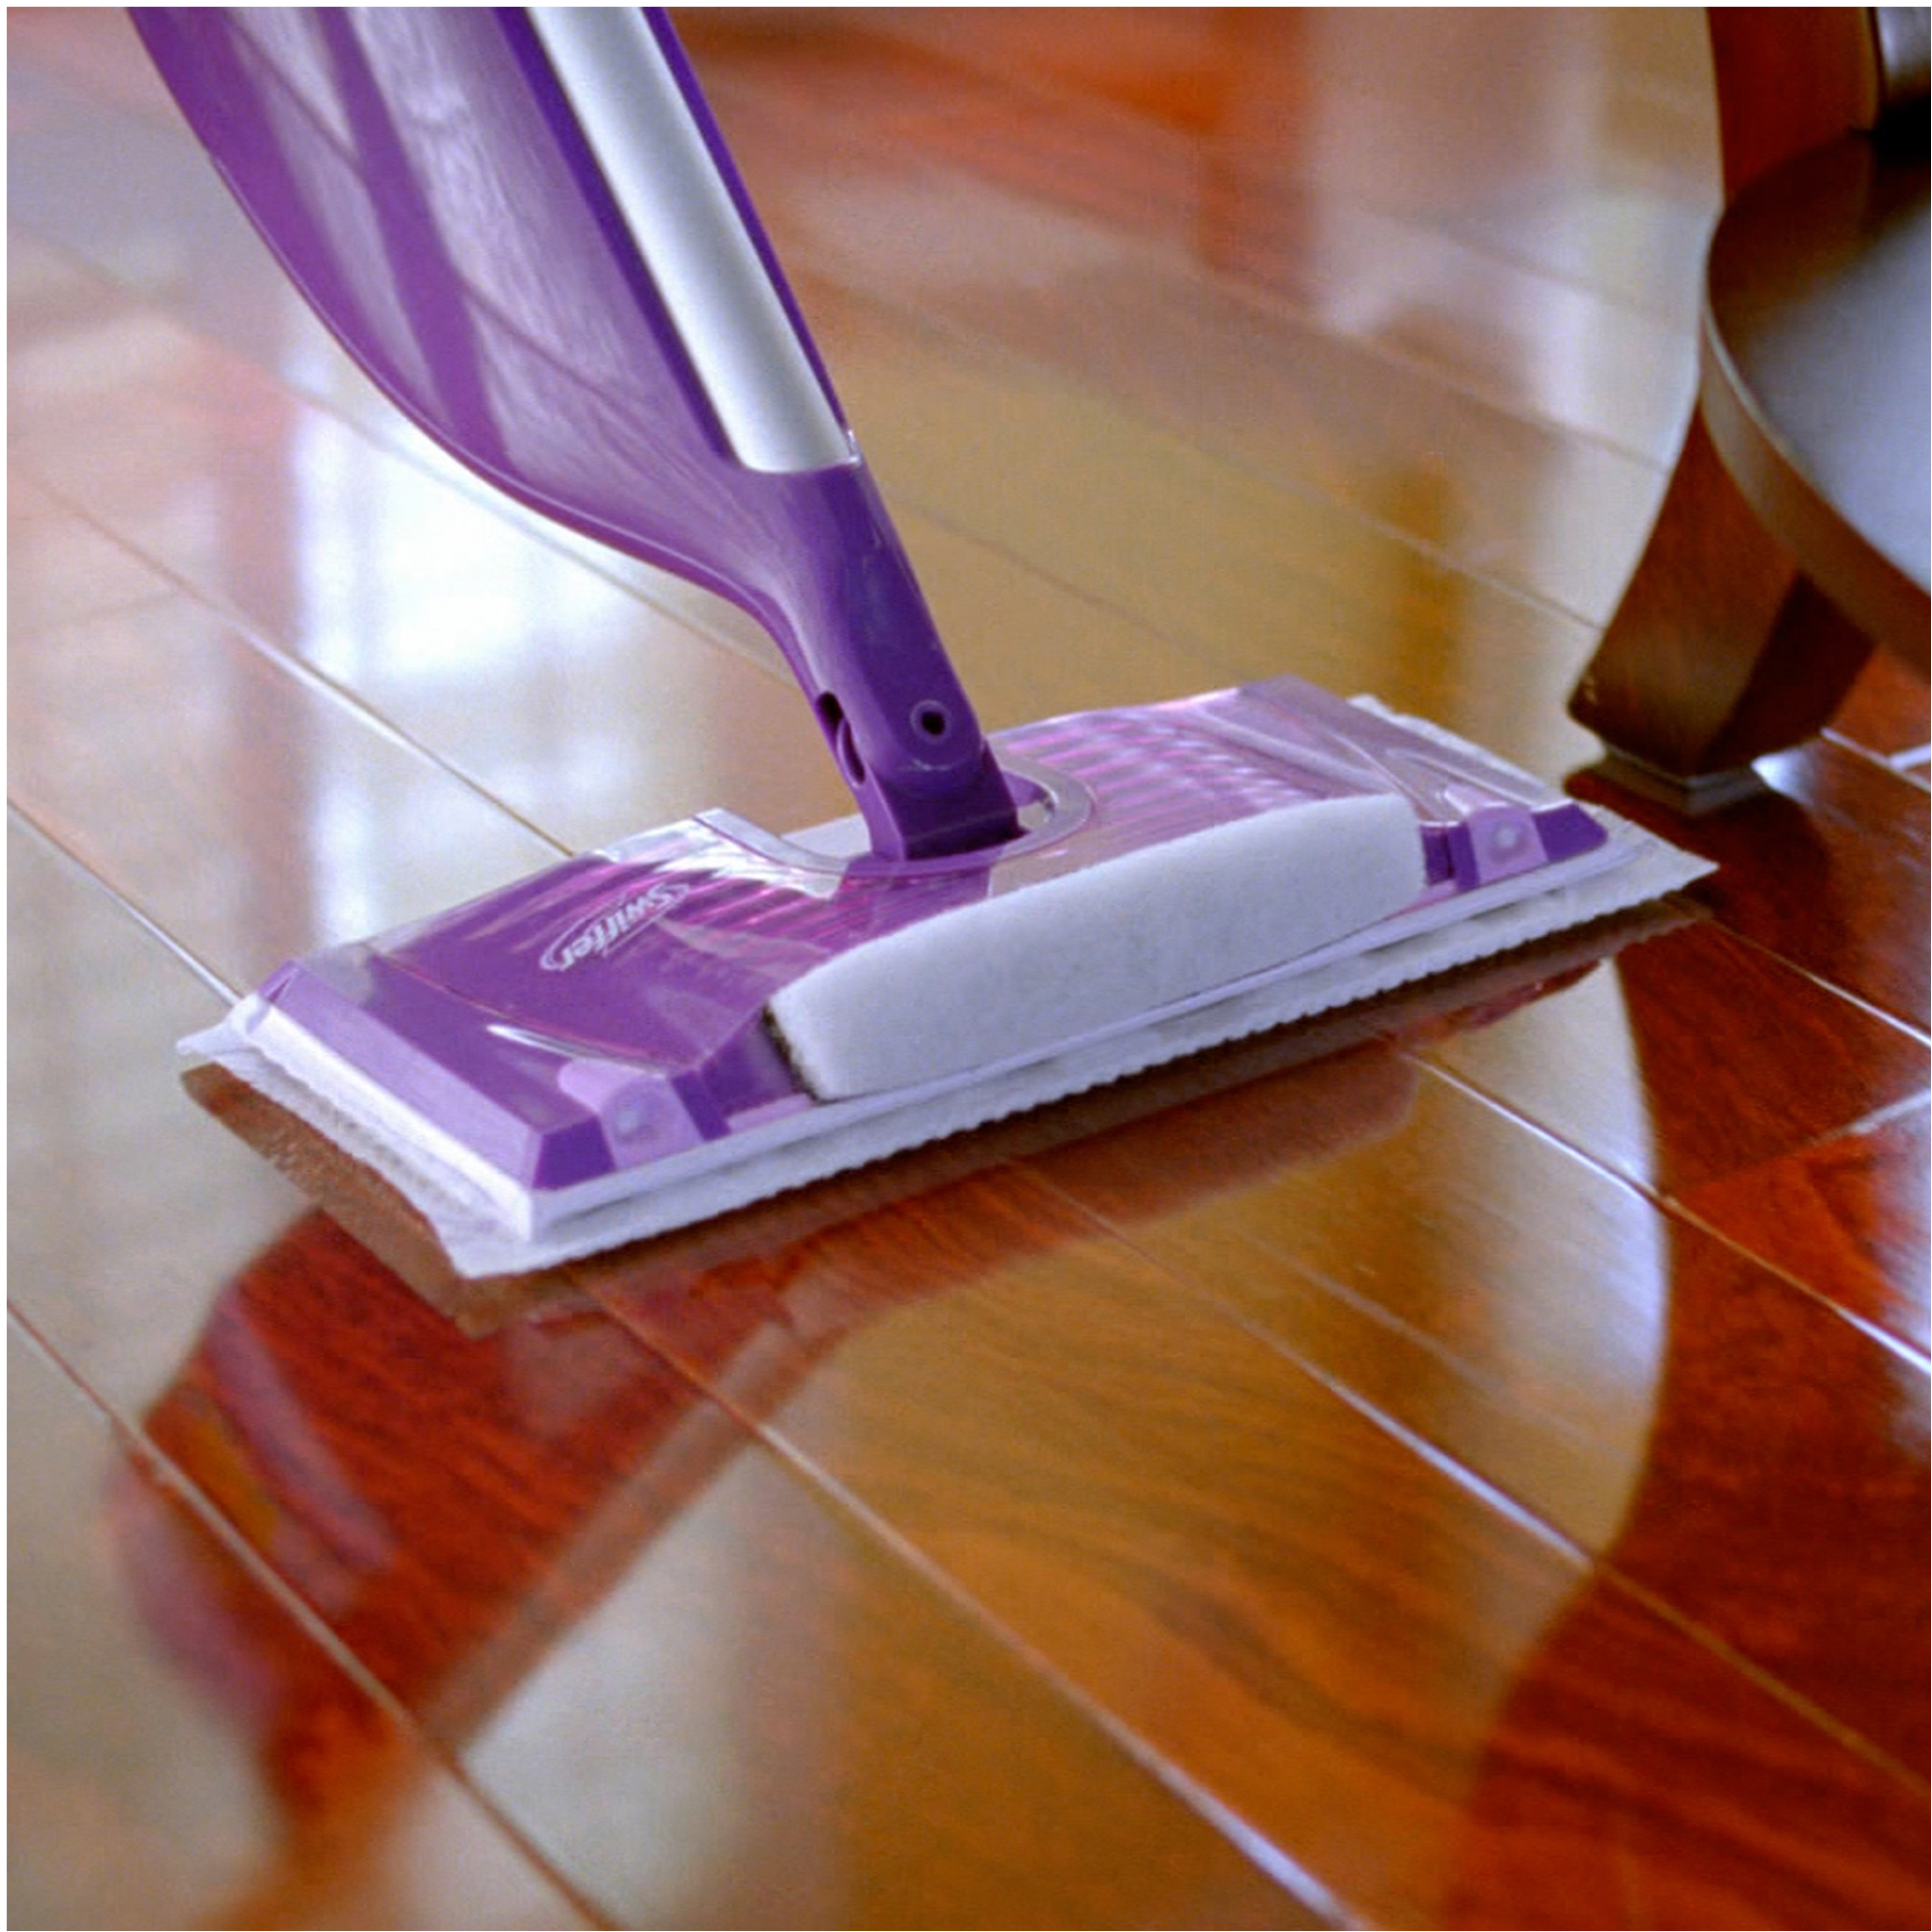 Shop for Carpet & Floor Cleaners in Cleaning Supplies. Buy products such as Bona Hardwood Floor Cleaner Refill, 96 fl oz at Walmart and save.